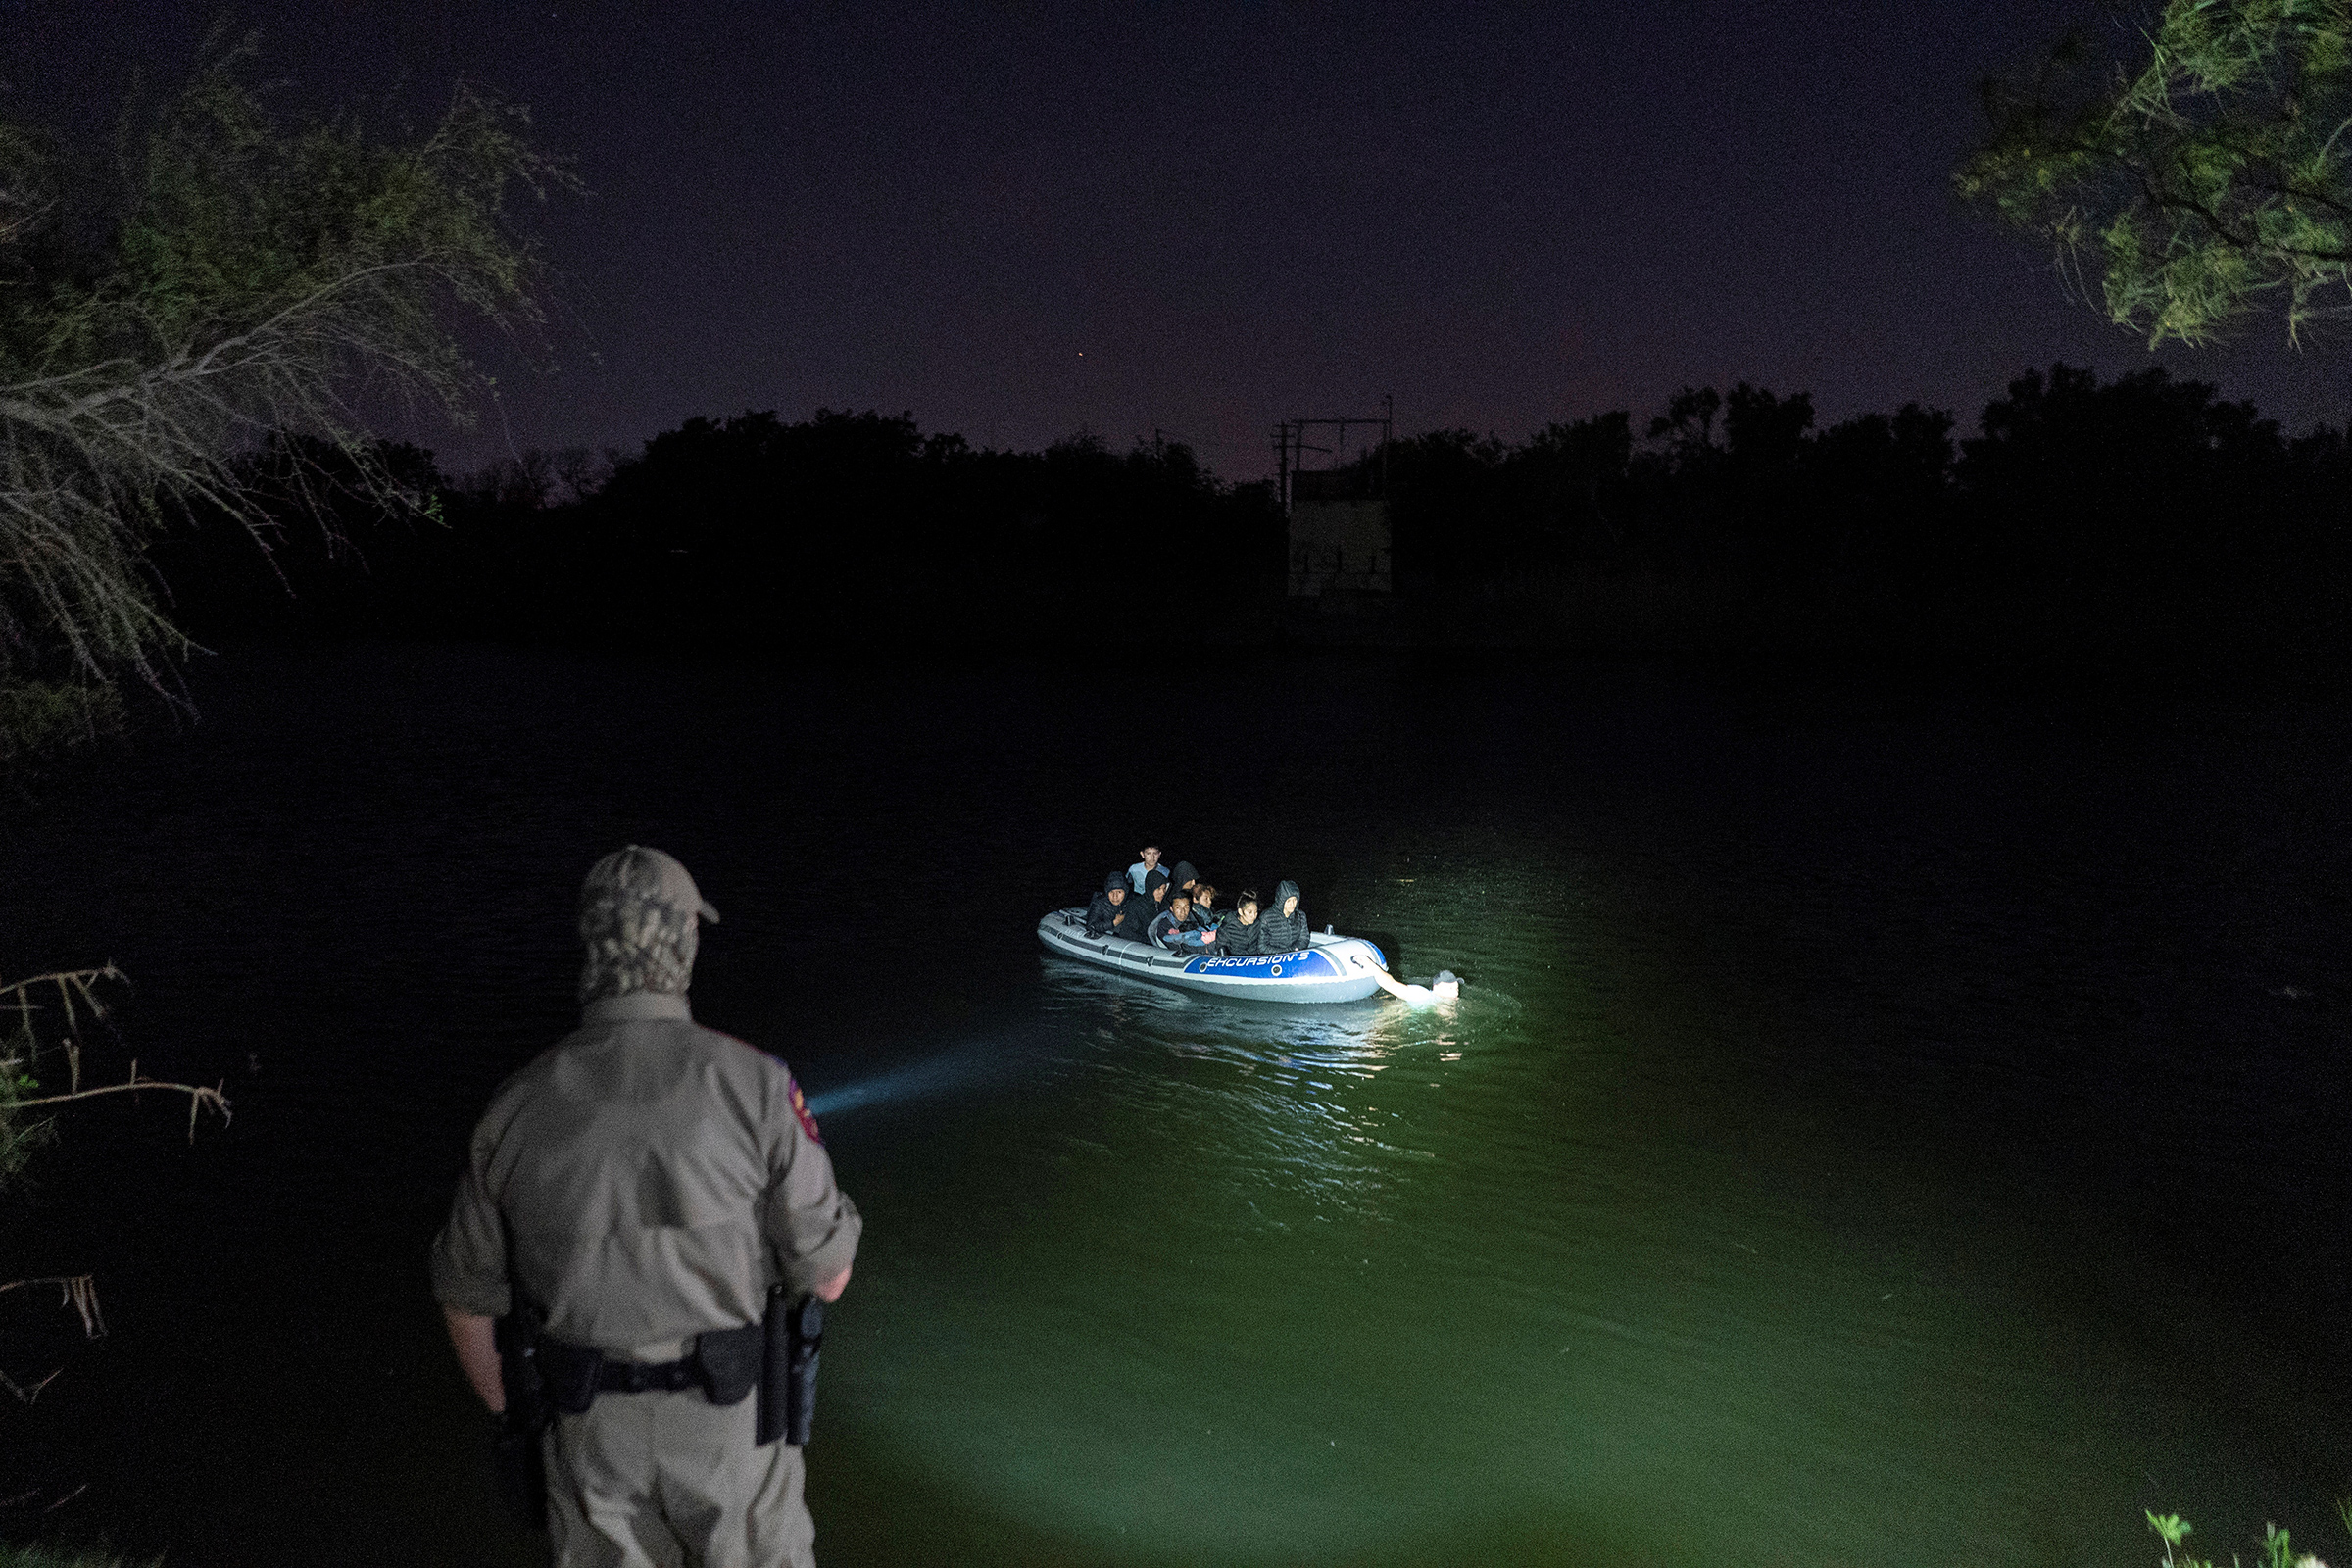 Asylum-seeking migrants' families cross the Rio Grande from Mexico as a Texas State Trooper officer points a flashlight at the inflatable raft in Roma, Texas, on April 8, 2021. The raft later turned back to the Mexican side and did not land on the U.S. side of the river.